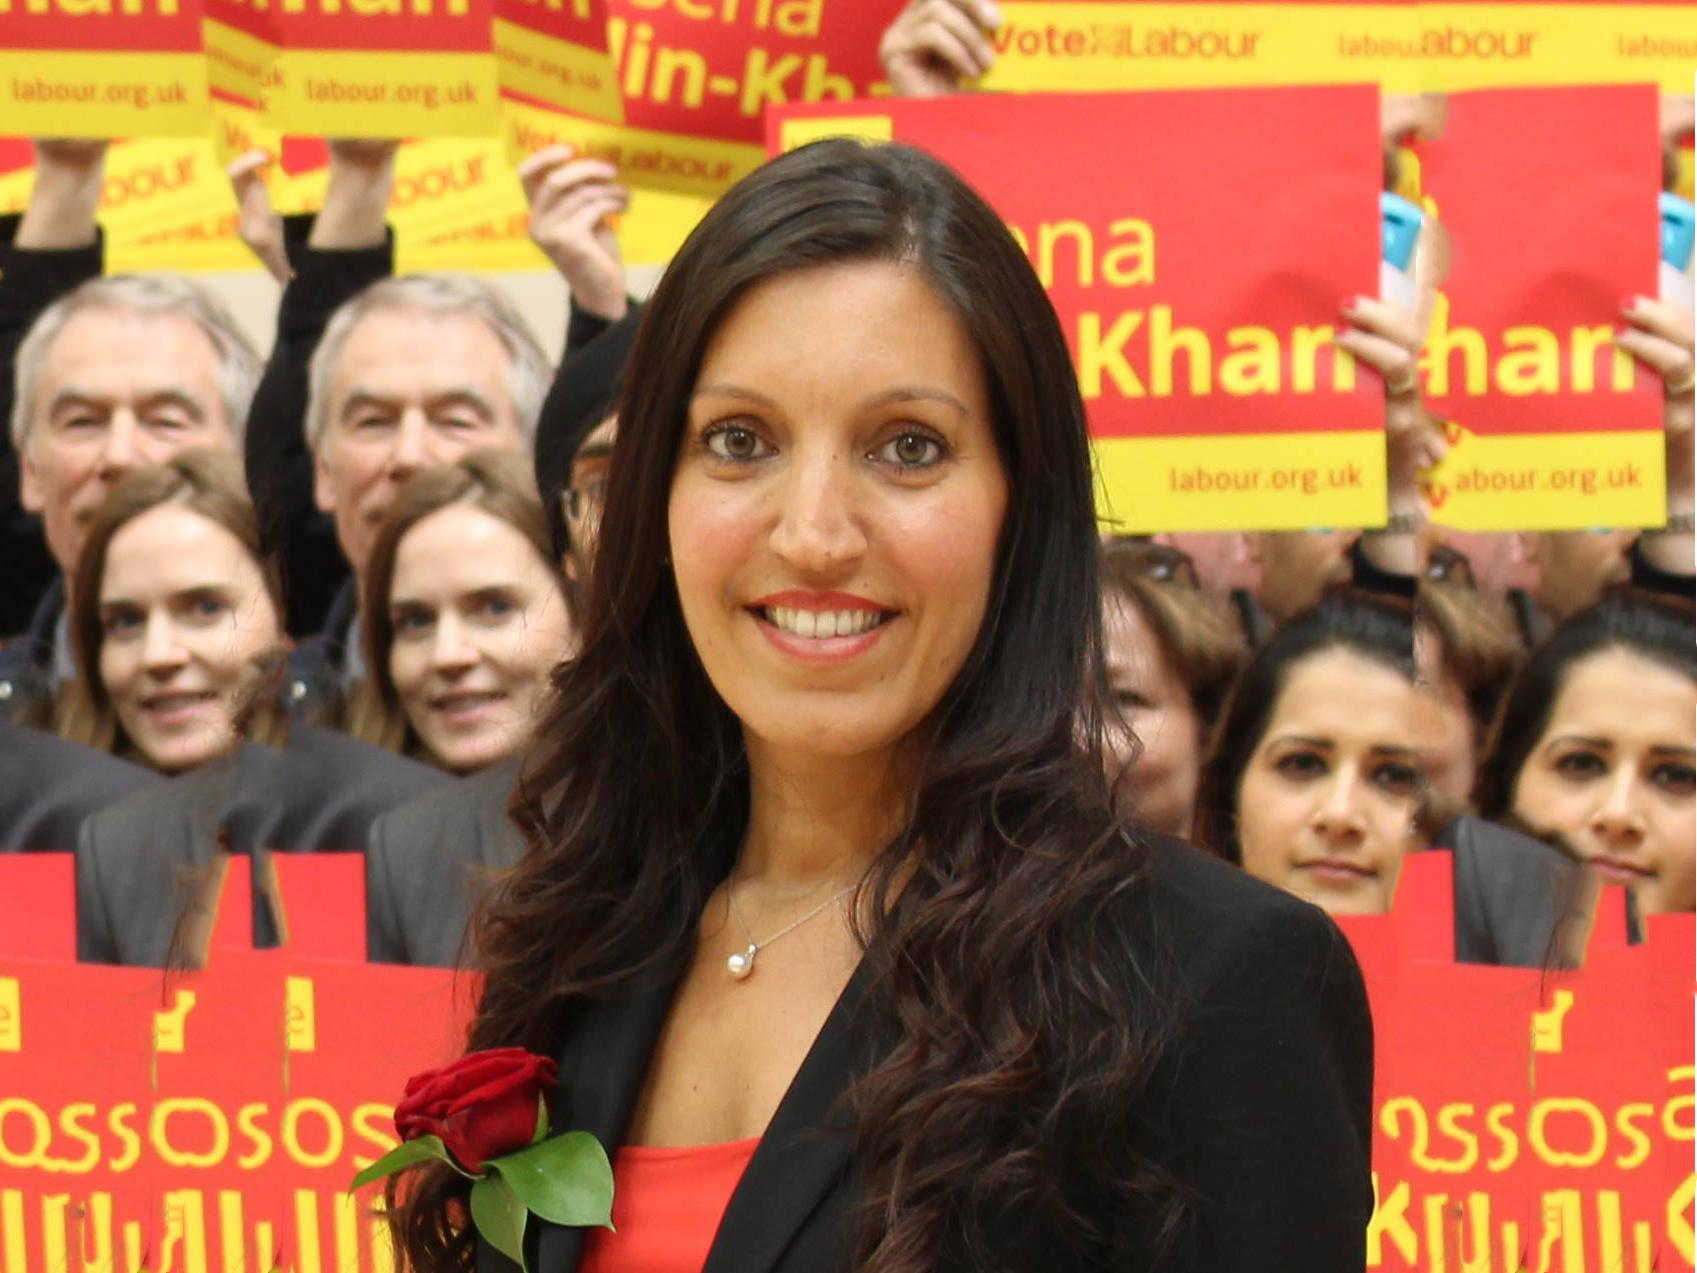 Dr Rosena Allin-Khan @DrRosena Labour MP for #Tooting Shadow Minister for Mental Health in @UKLabour Shadow Cabinet A&E Doctor Born & raised in Tooting rosena@drrosena.co.uk